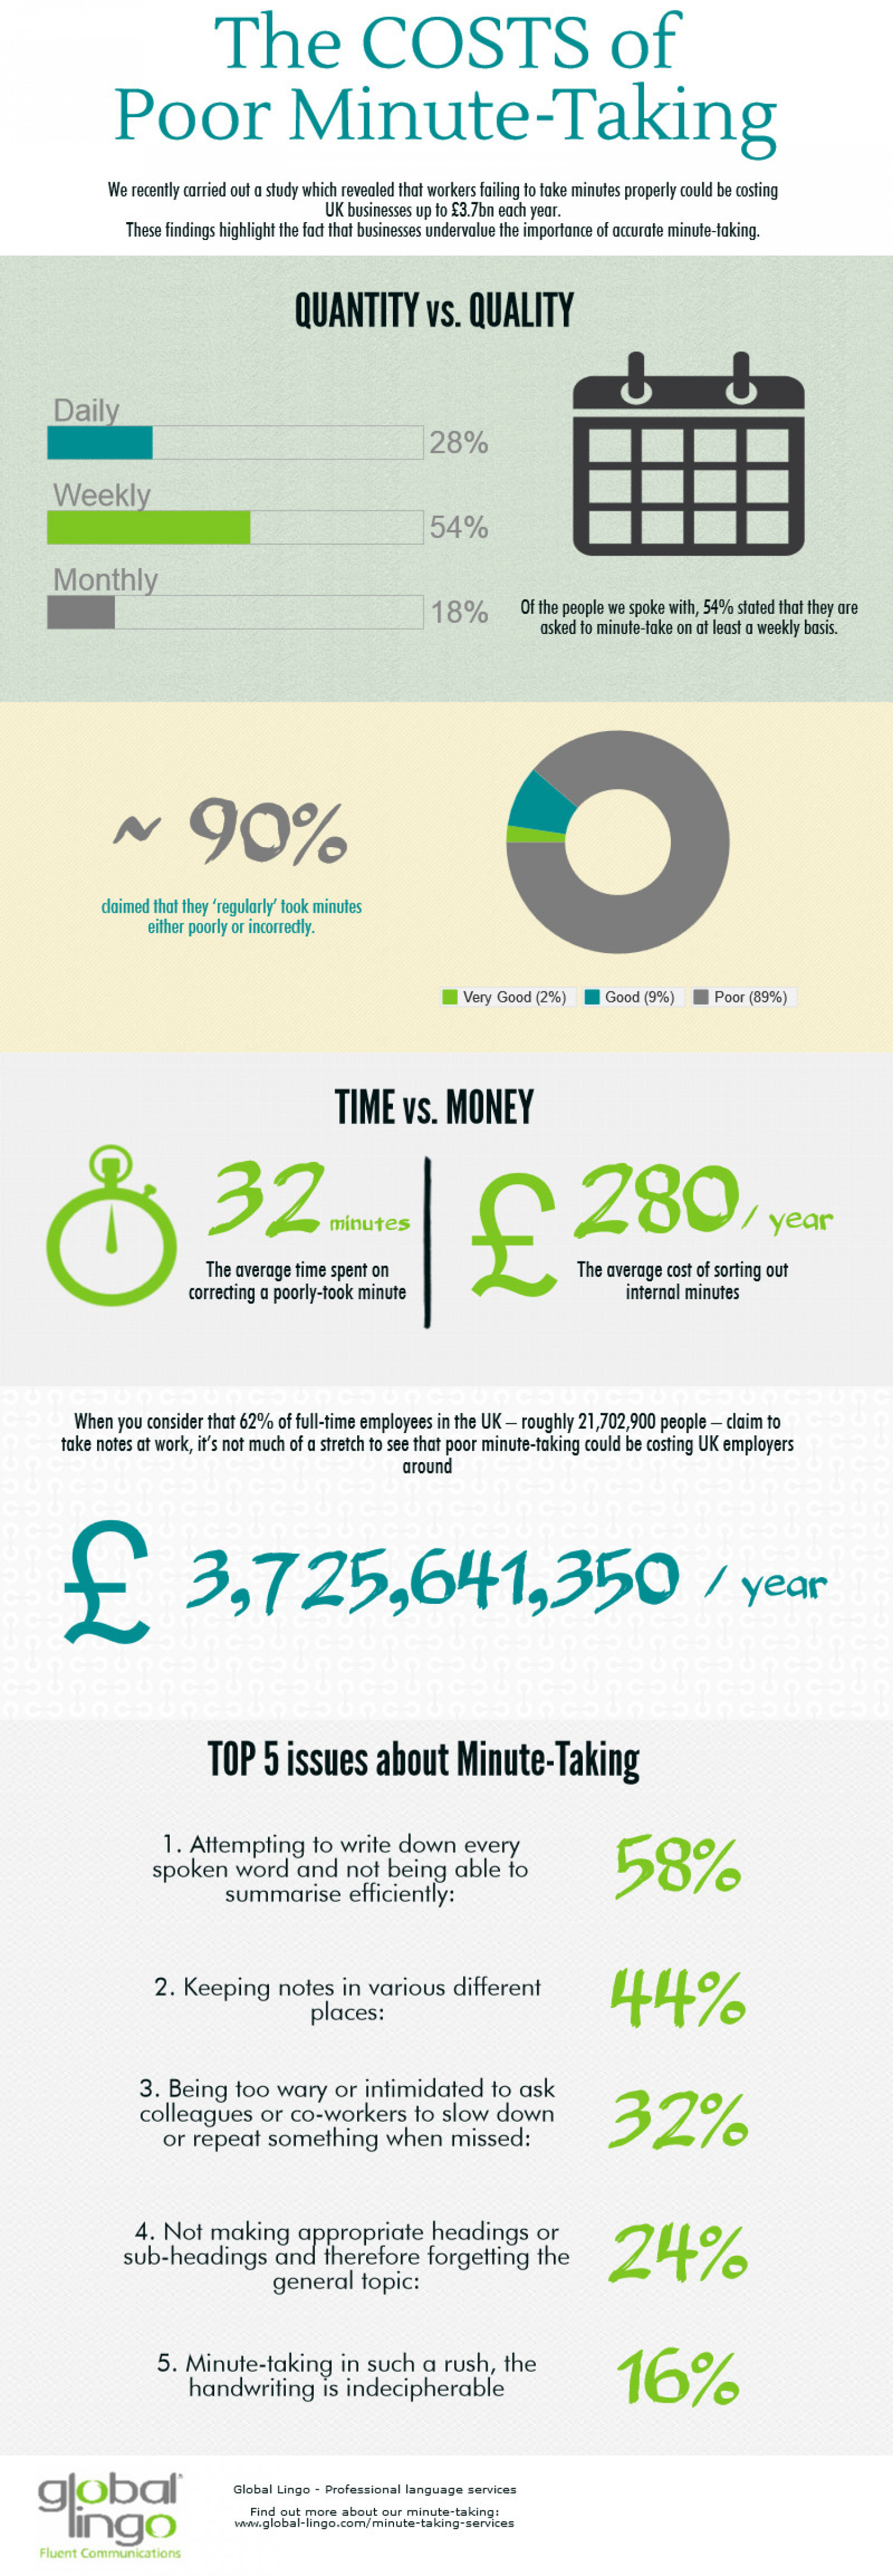 The Costs of Poor Minute-Taking Infographic